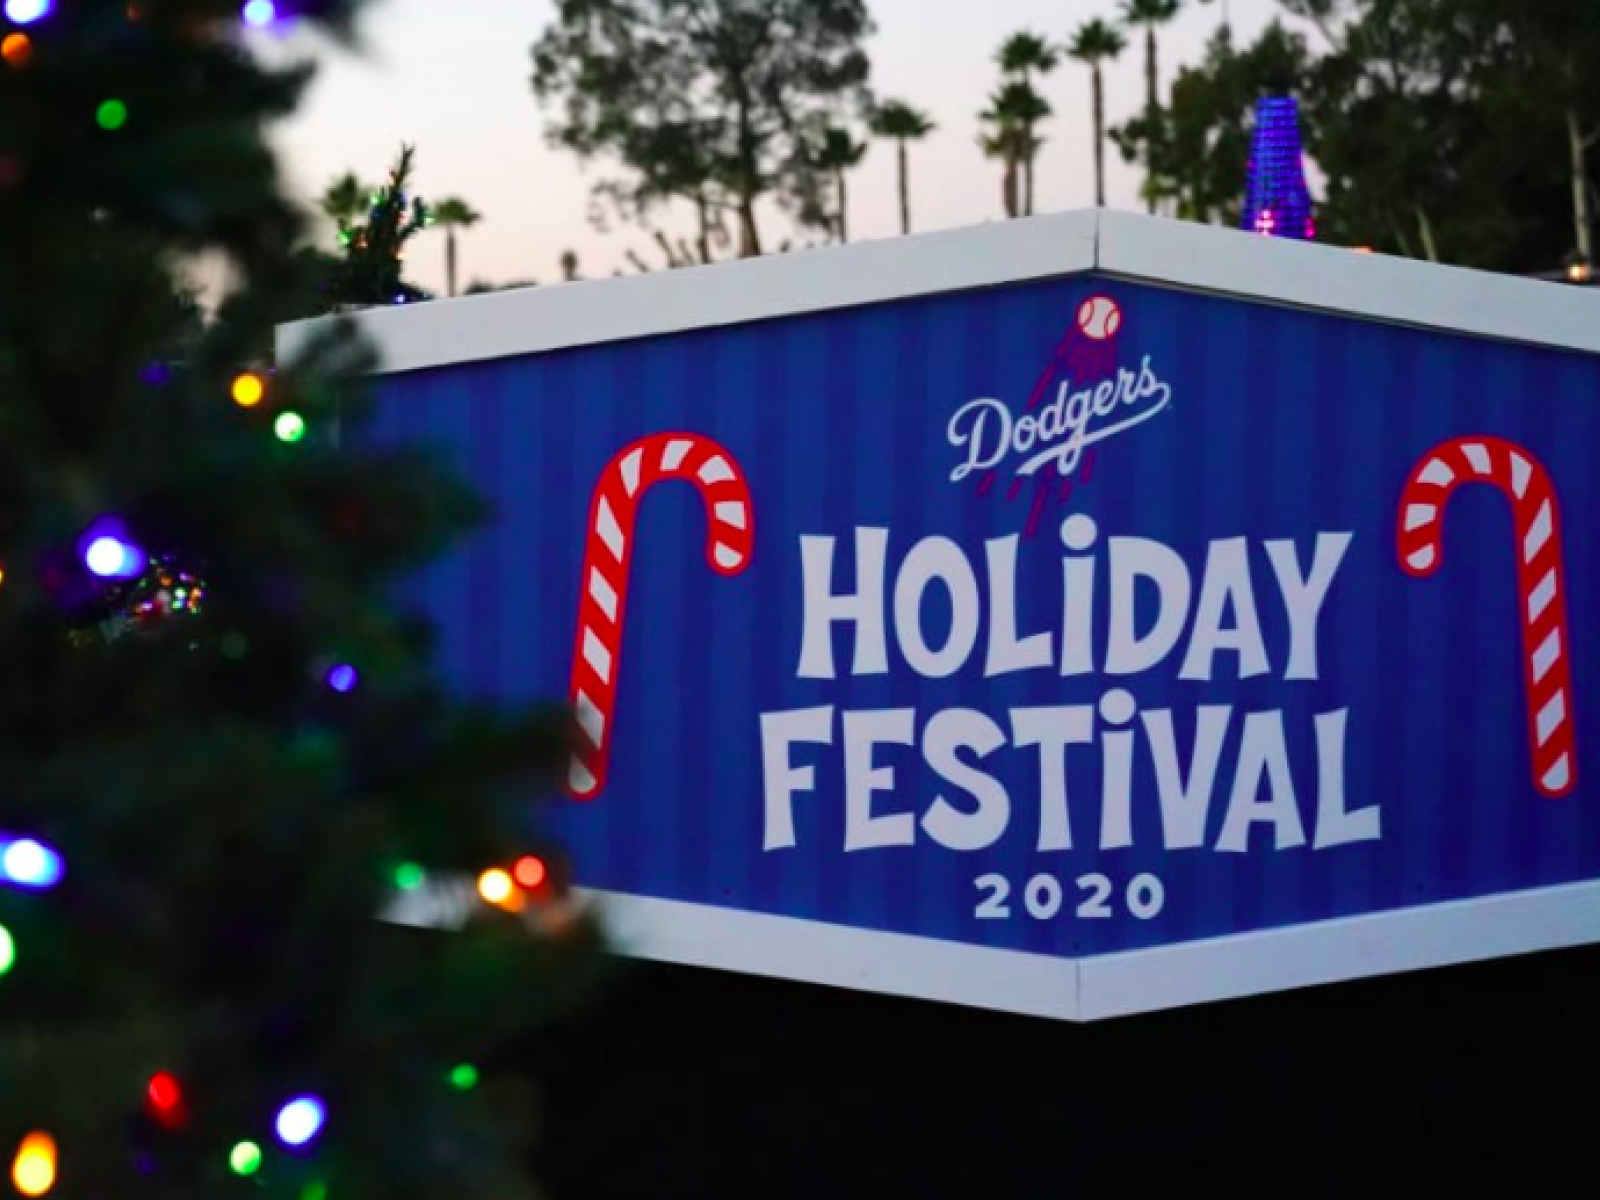 Main image for event titled Dodgers Drive-Thru Holiday Festival